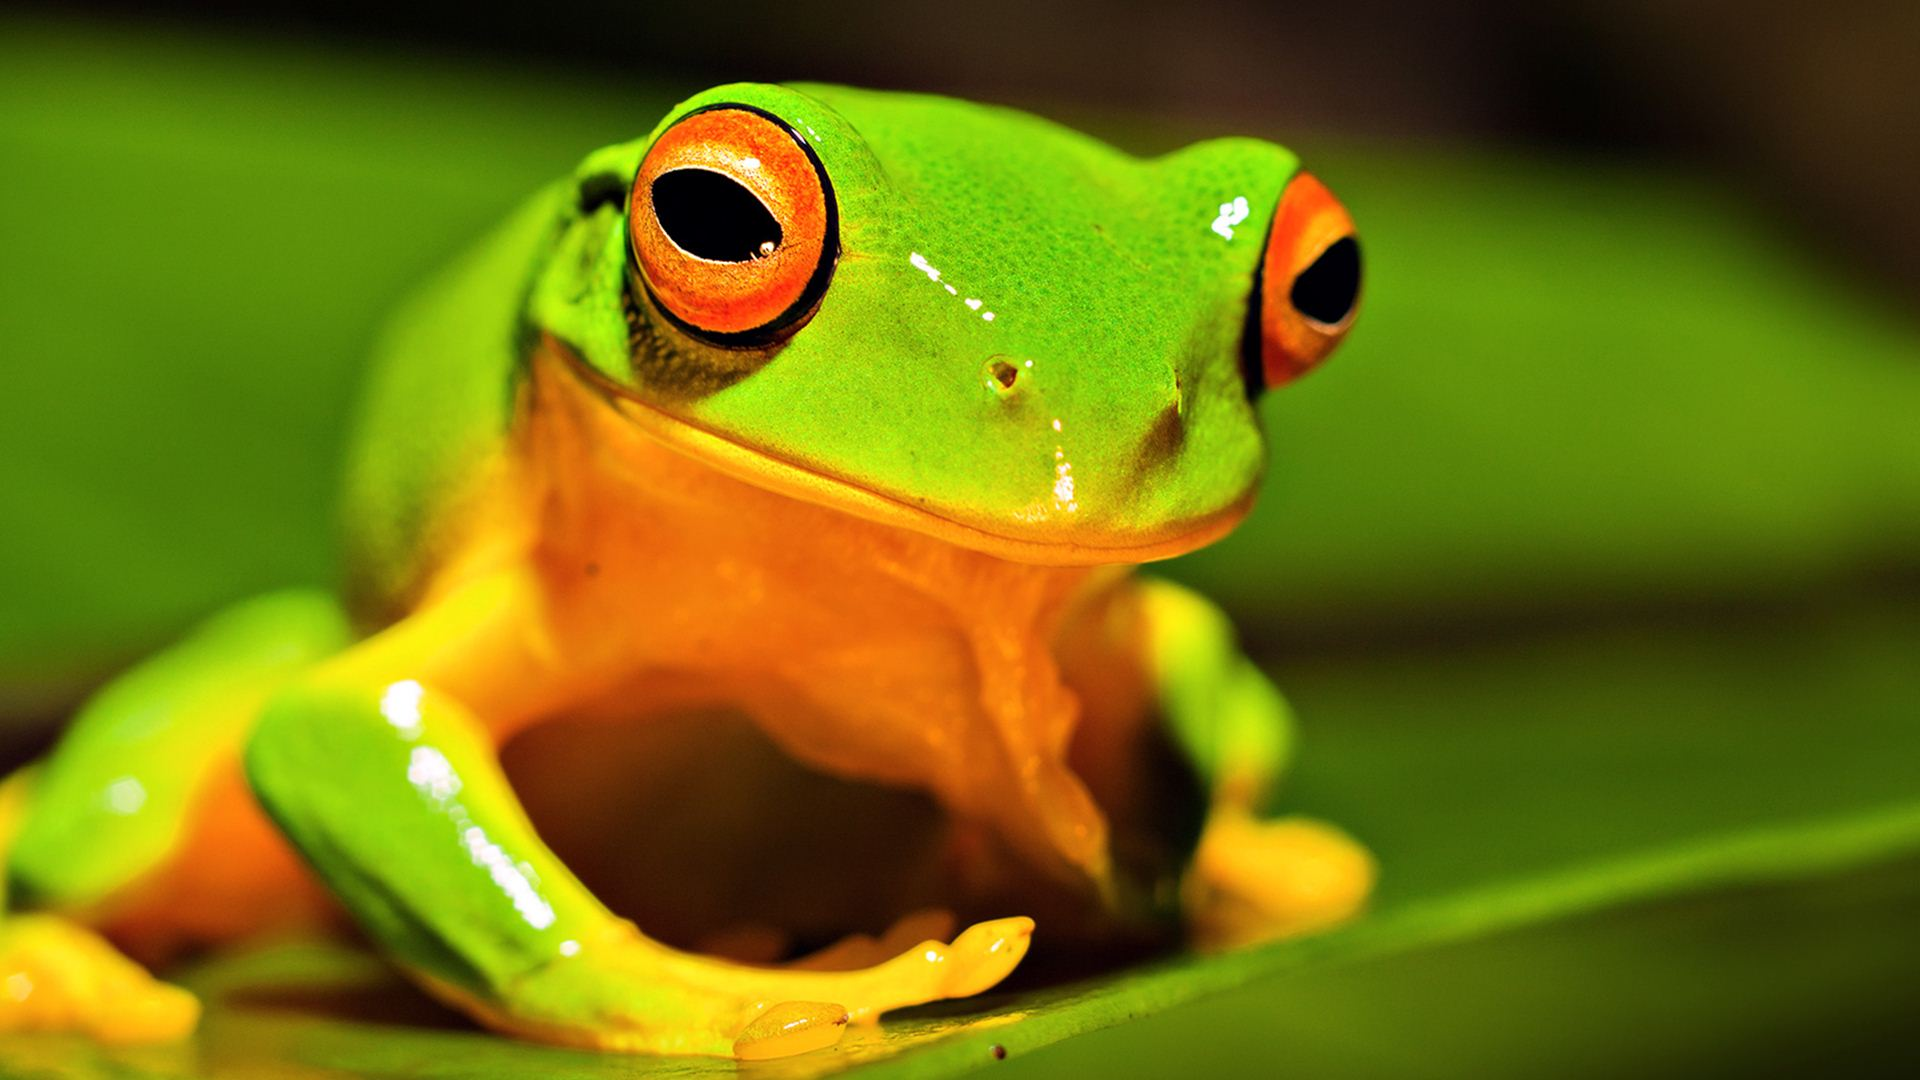 nature-animals-frog-green-wallpaper | wallpaper.wiki